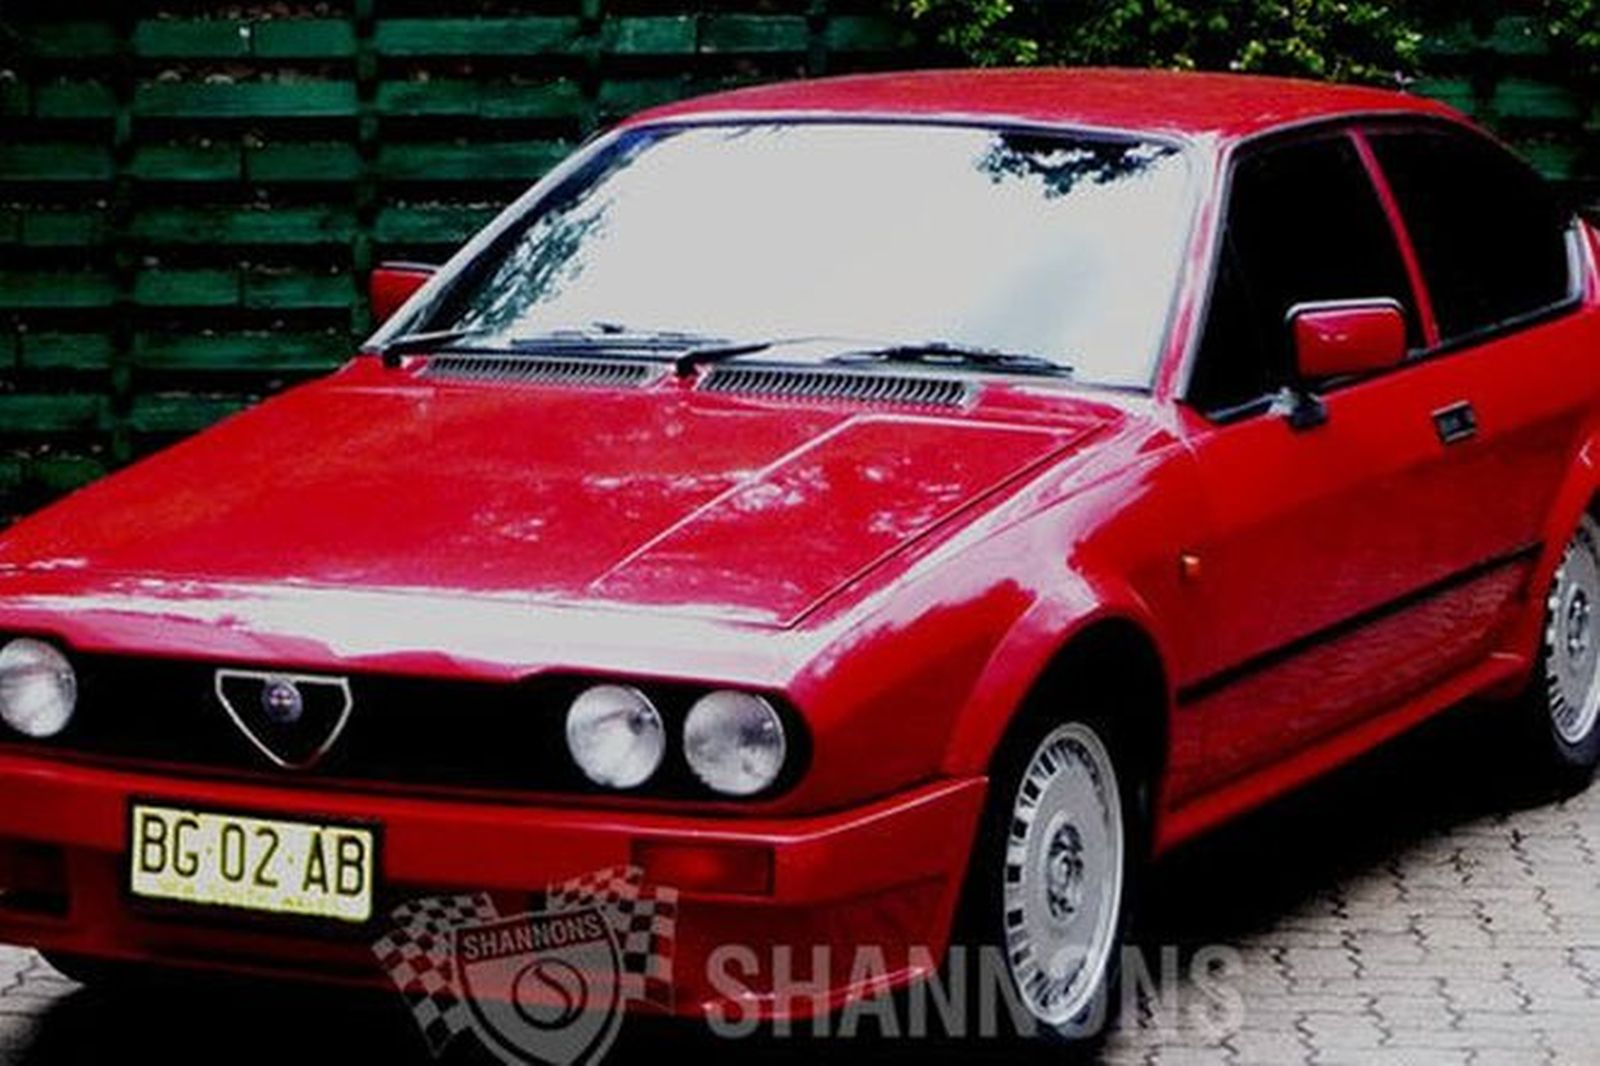 alfa romeo gtv 83a 2000 coupe auctions lot 6 shannons. Black Bedroom Furniture Sets. Home Design Ideas